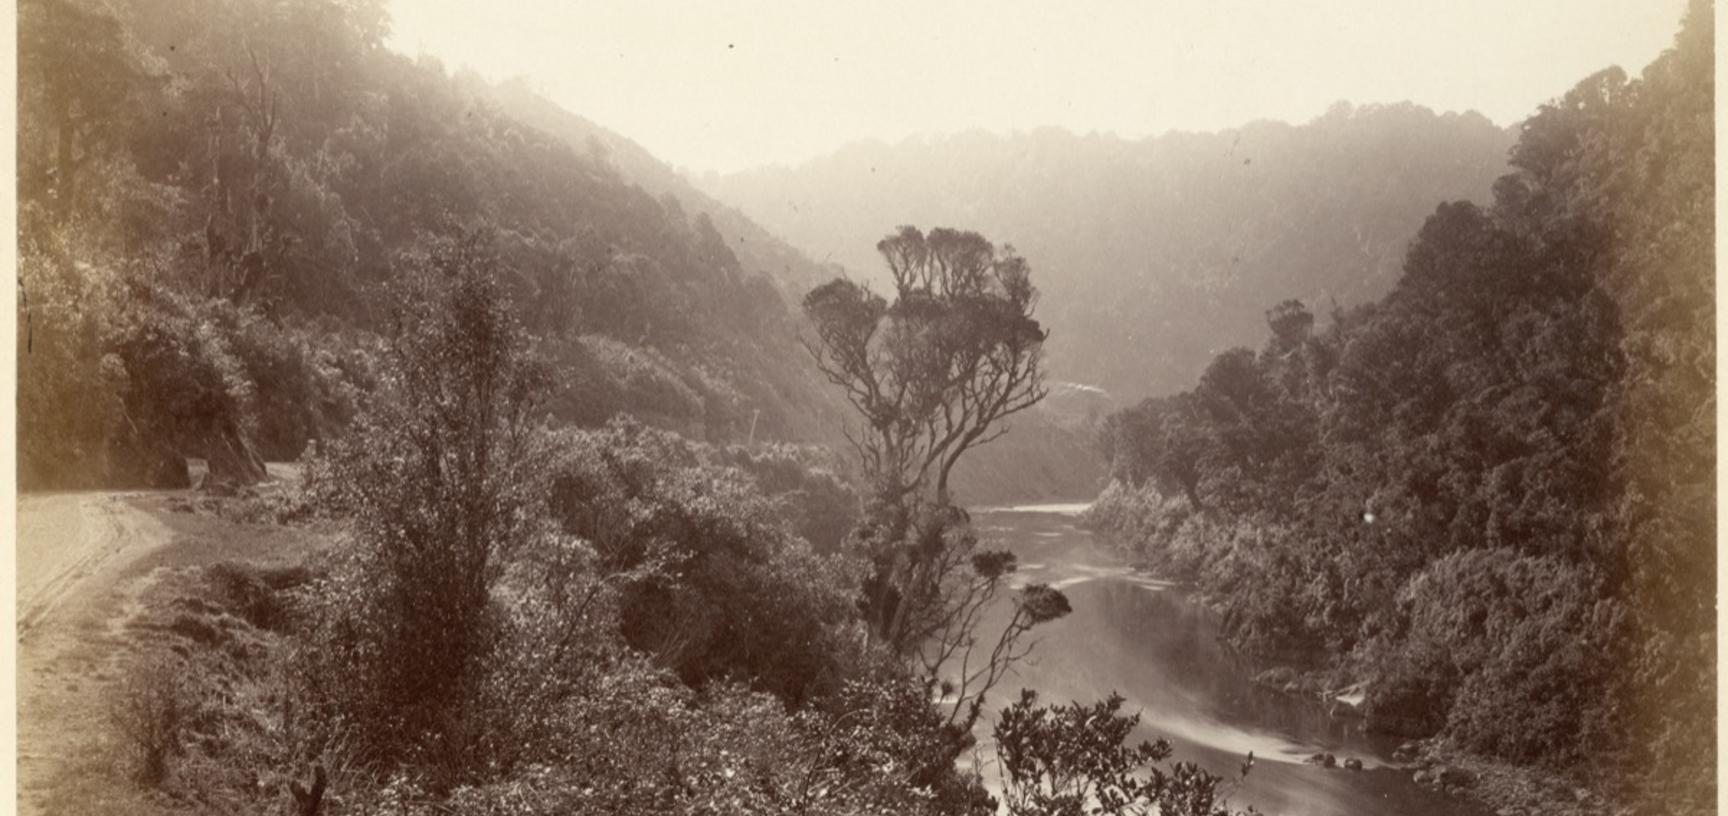 View of the Manawatu Gorge. Photograph by Alfred Burton for the Burton Brothers studio (Dunedin). Manawatu River, North Island, New Zealand. Circa 1885. (Copyright Pitt Rivers Museum, University of Oxford. Accession Number: 1998.245.178)